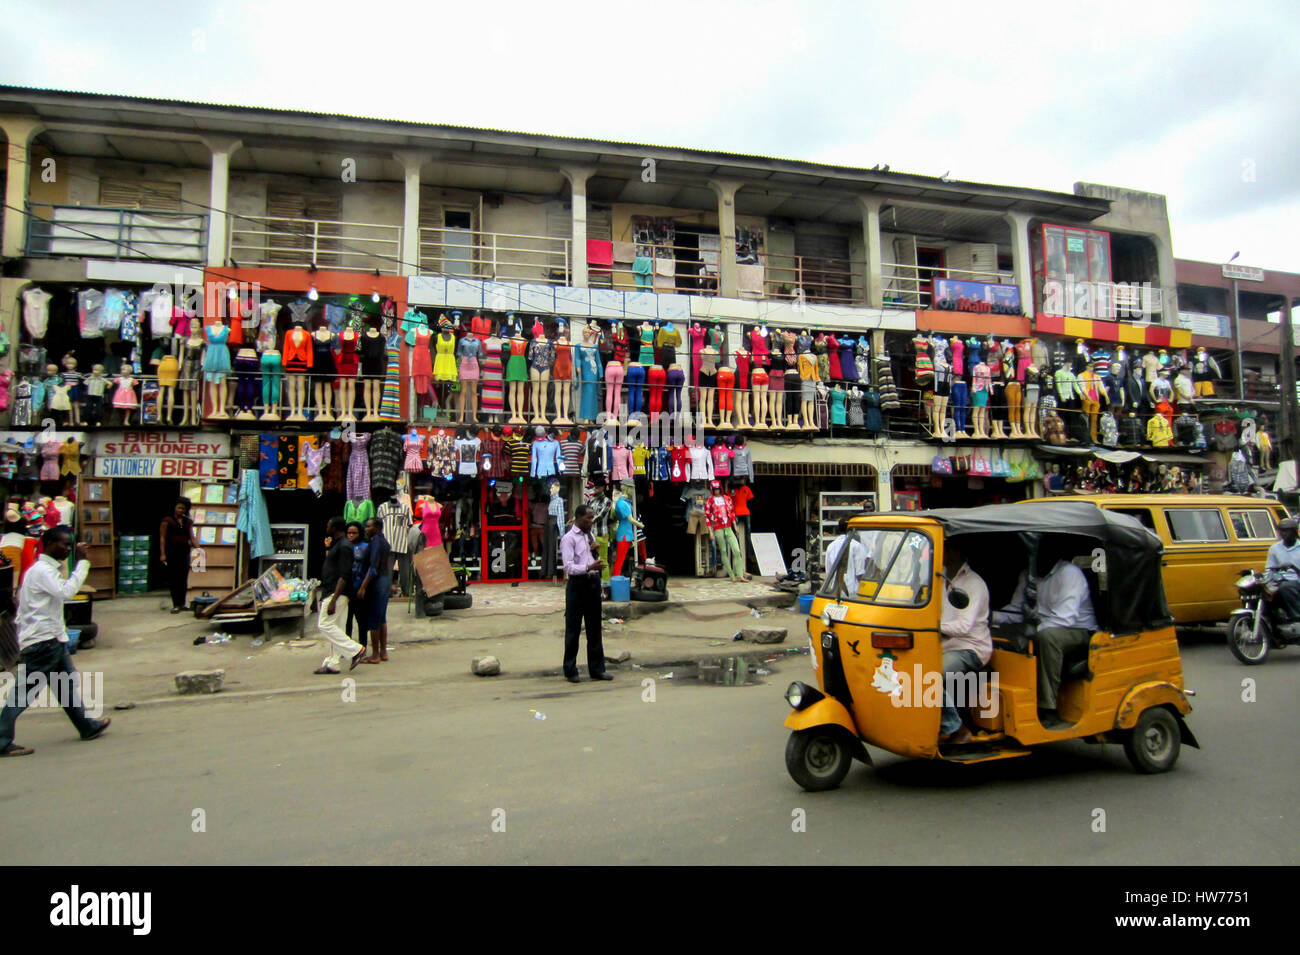 Colorful african fashion shops, with many clothes hanging in mannequins, in the large city of Lagos, Nigeria - Stock Image